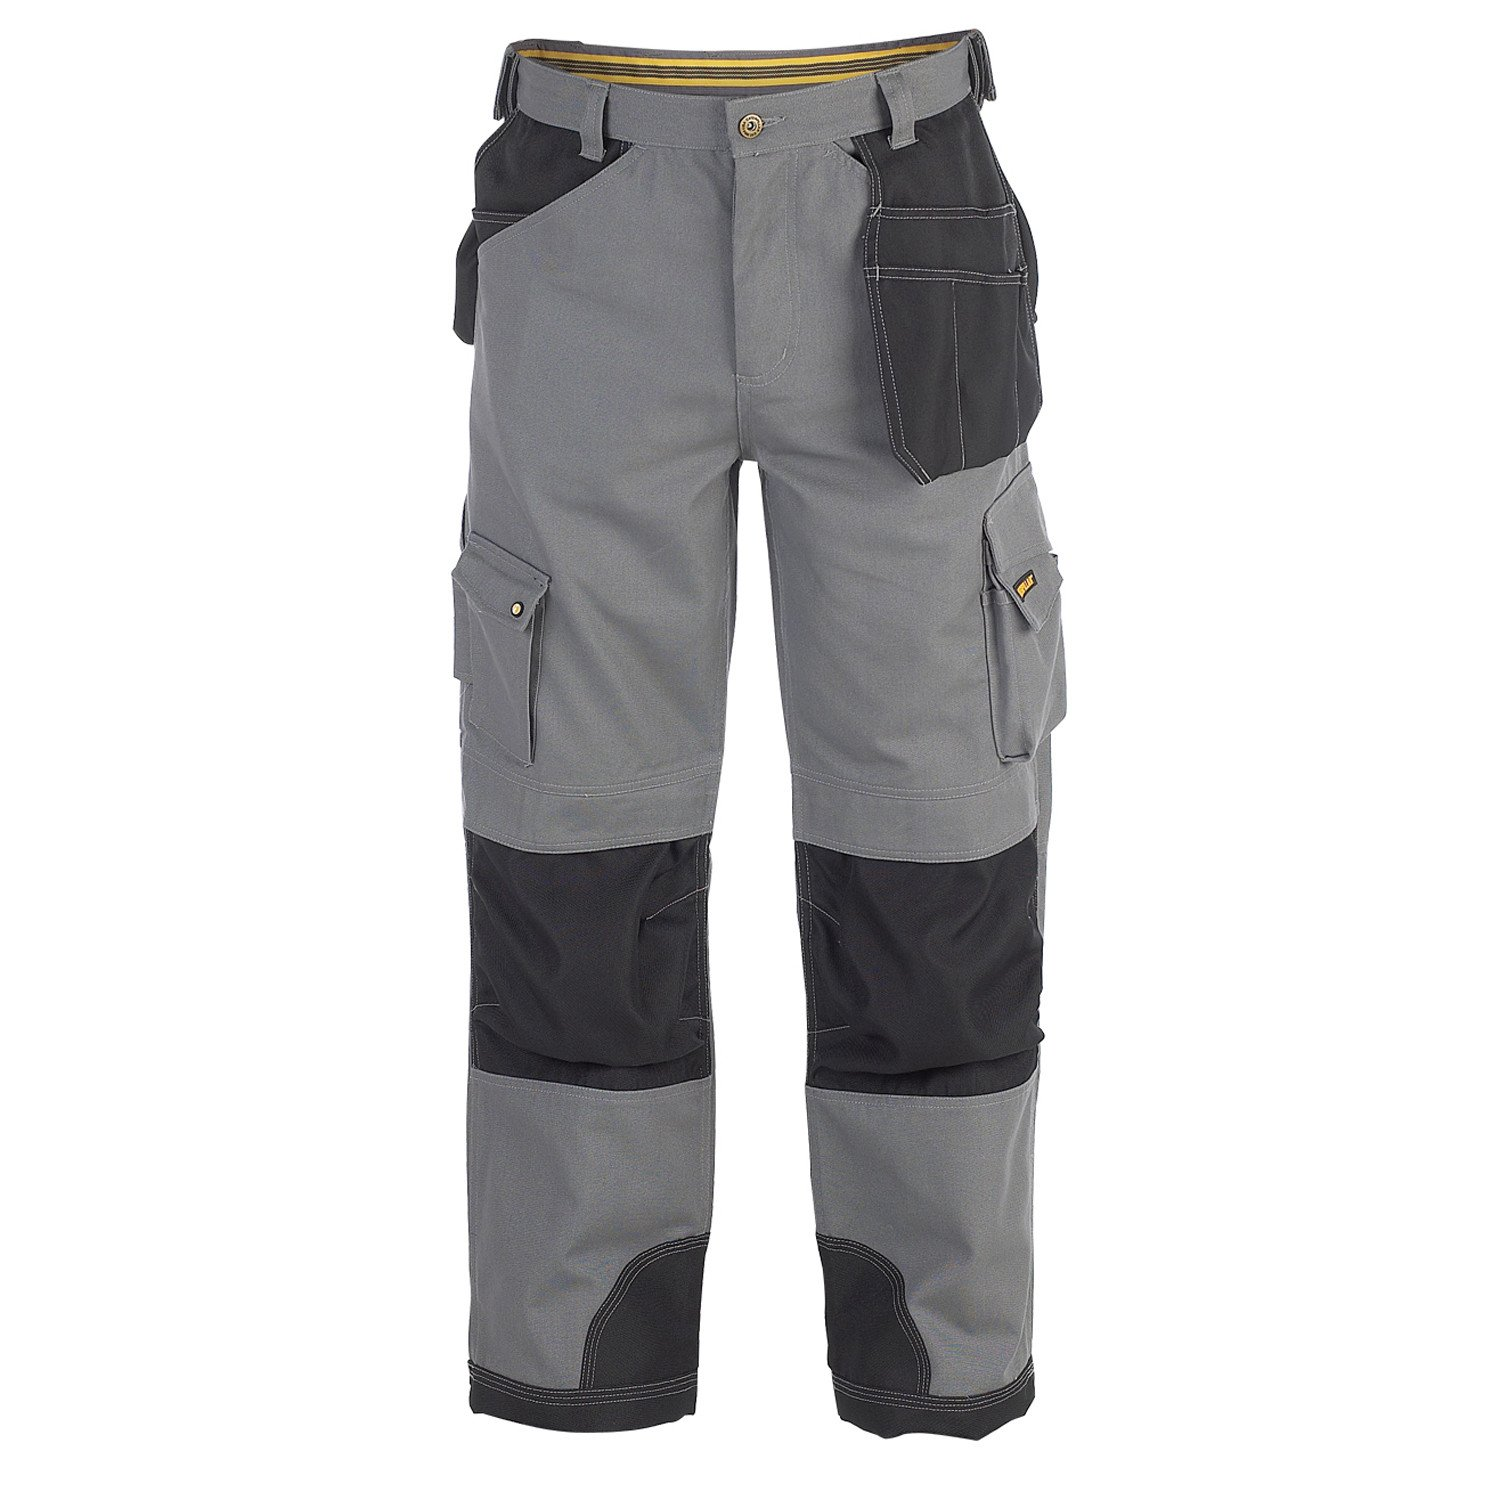 New Mens Caterpillar C172 Trademark Trousers Knee Pad Pockets Workwear Bottoms